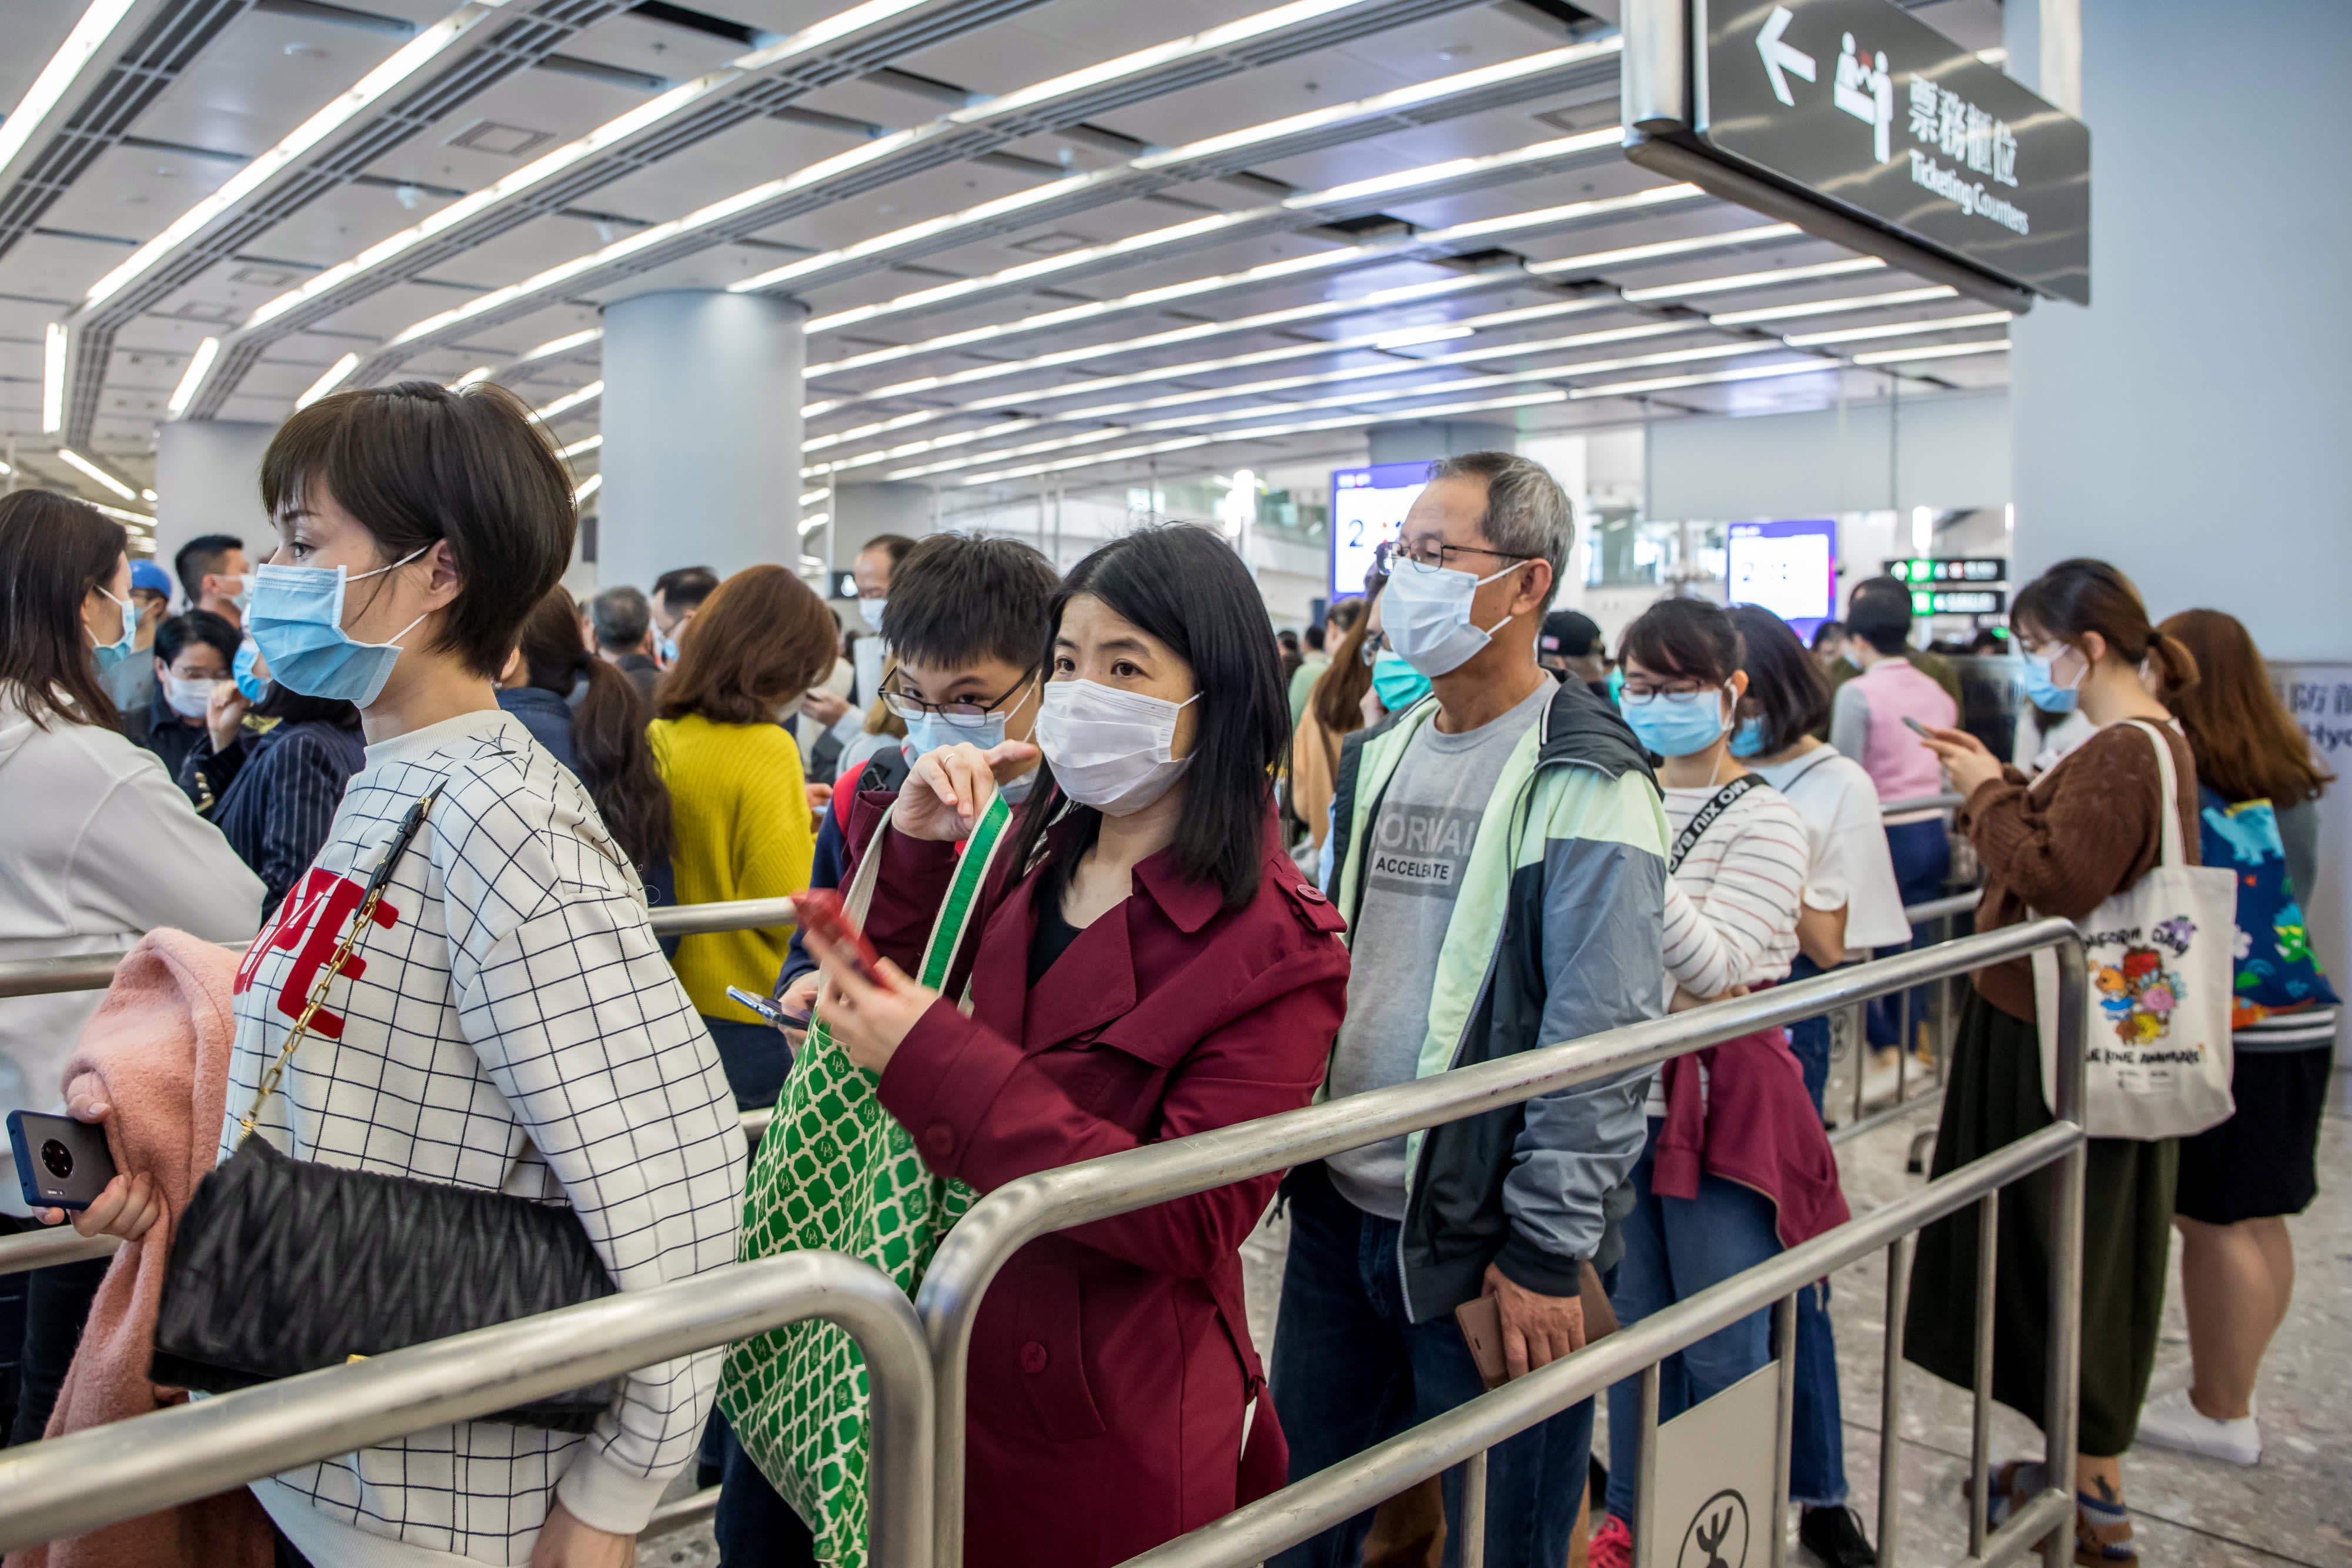 State Department issues travel advisory, urges Americans to reconsider travel to China as coronavirus spreads